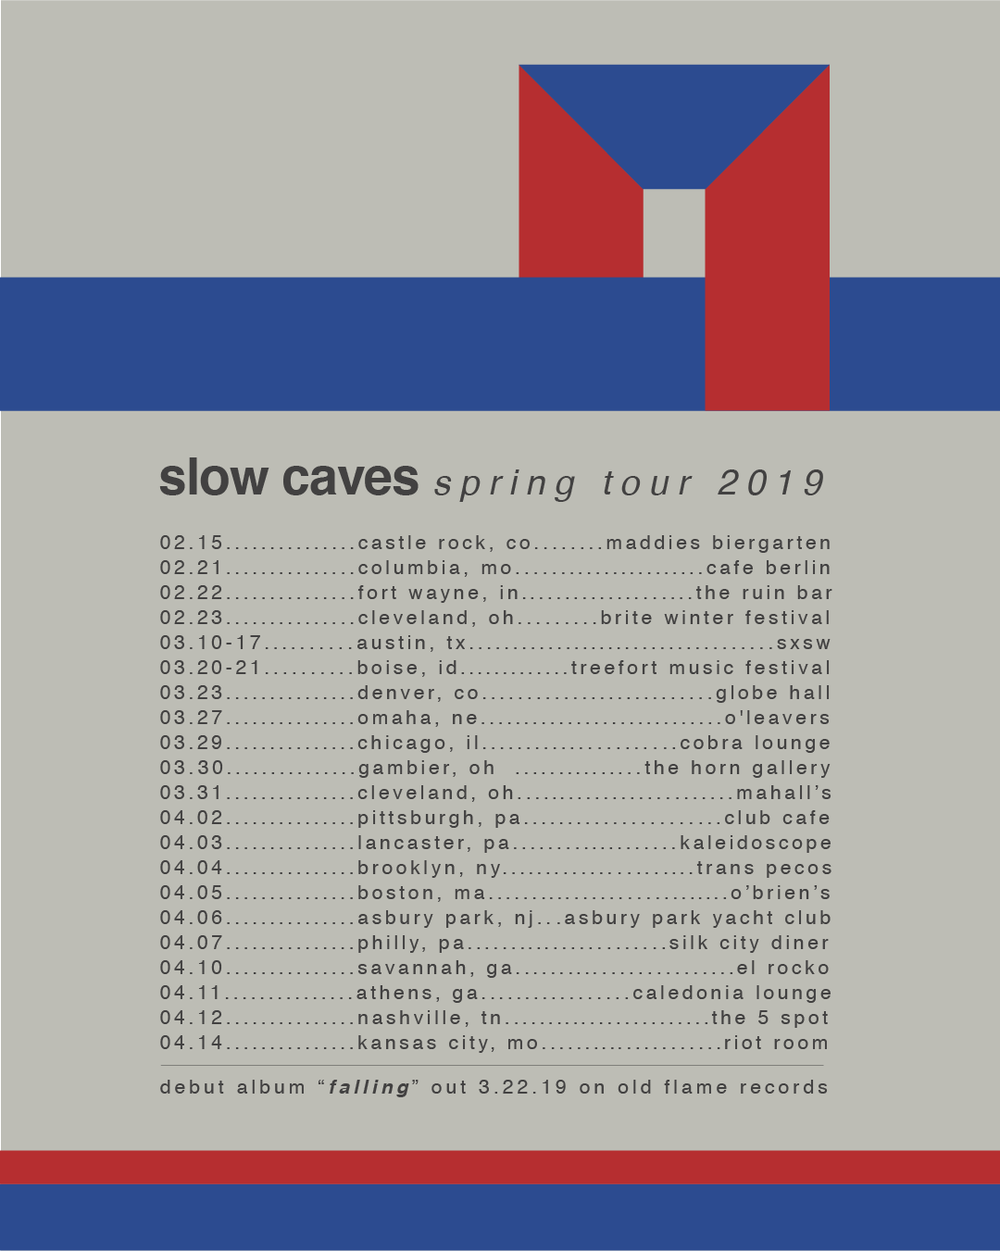 slow caves tour.png